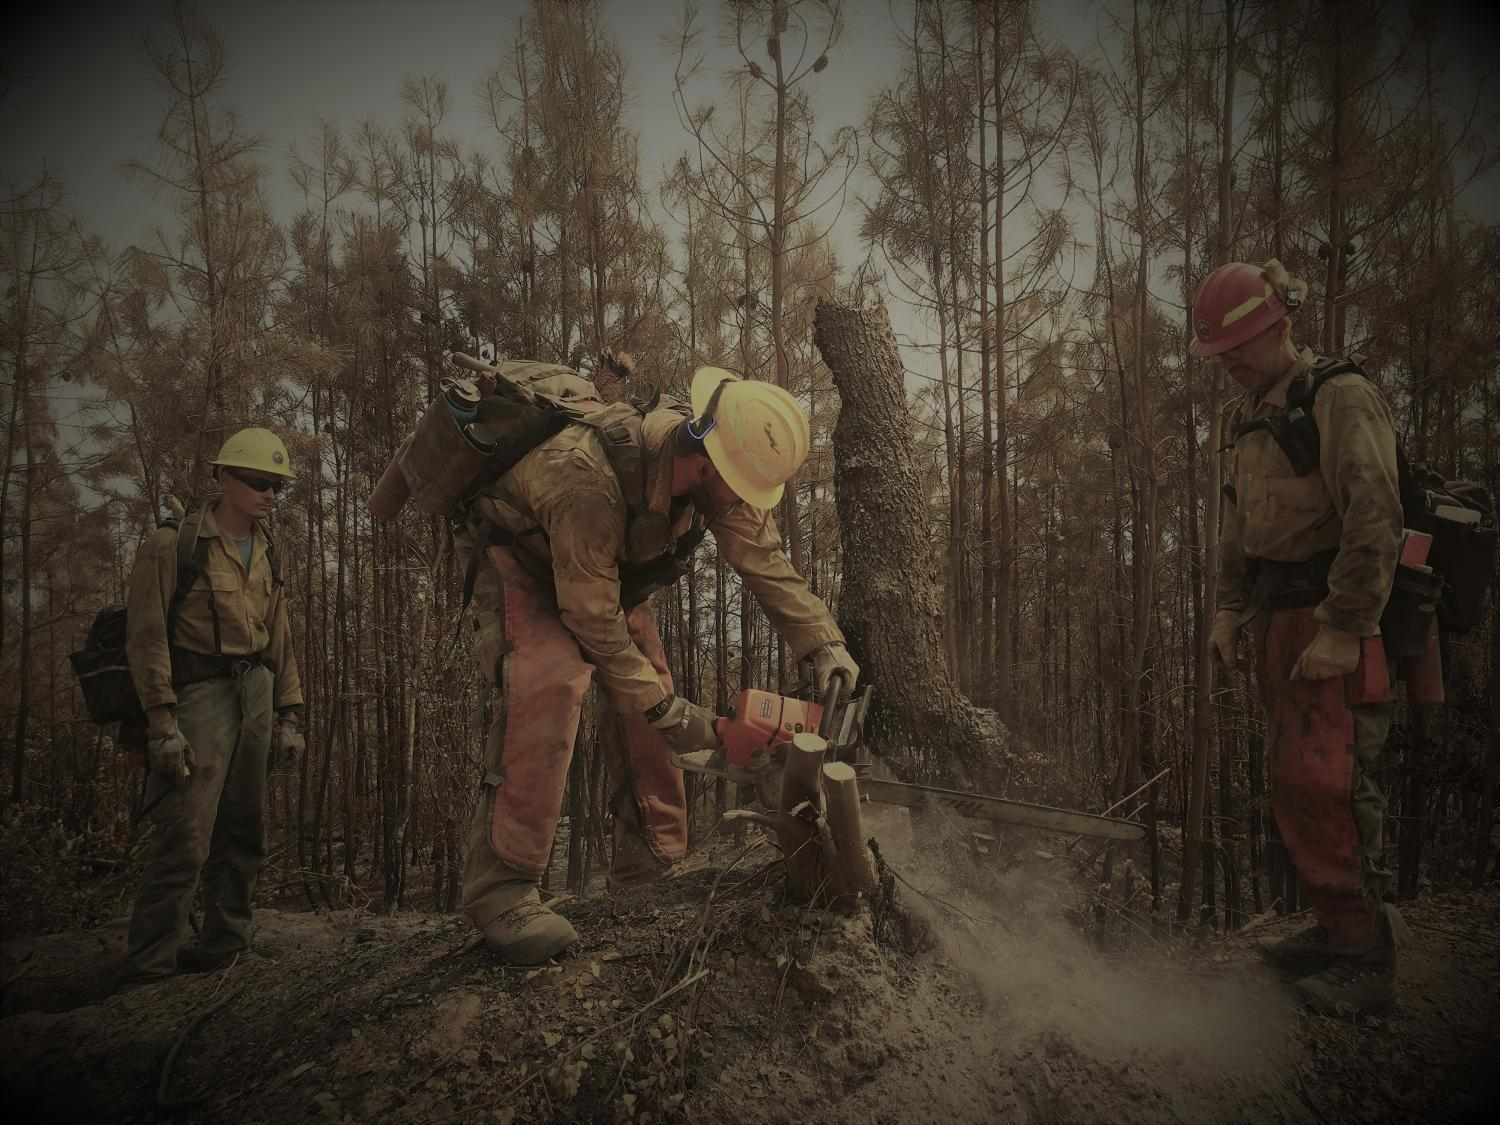 Firefighters battling Carr Fire last year in California